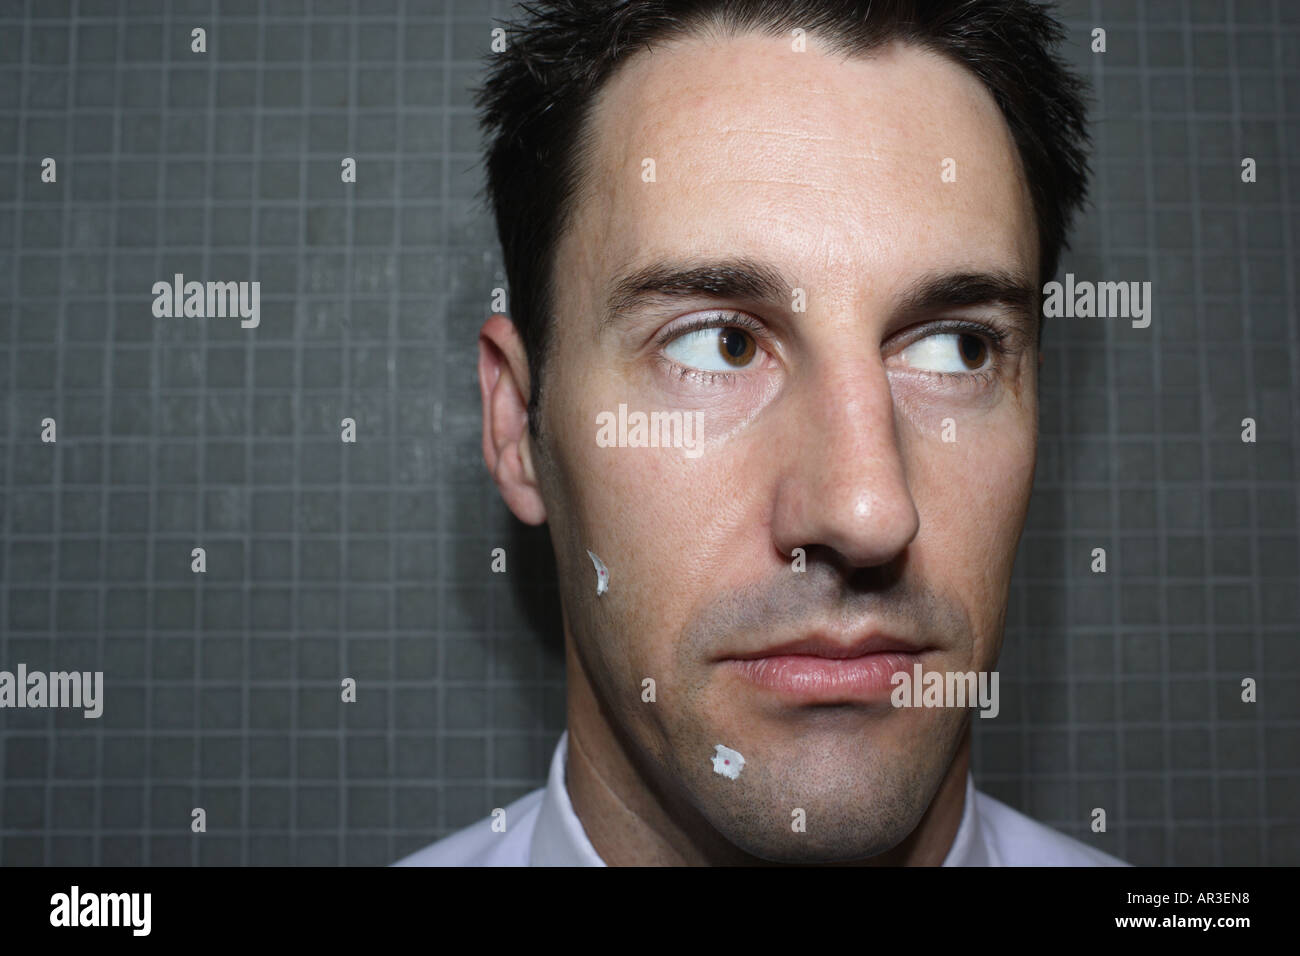 Portrait of a young businessman with shaving cuts and tissue on his face in bathroom - Stock Image